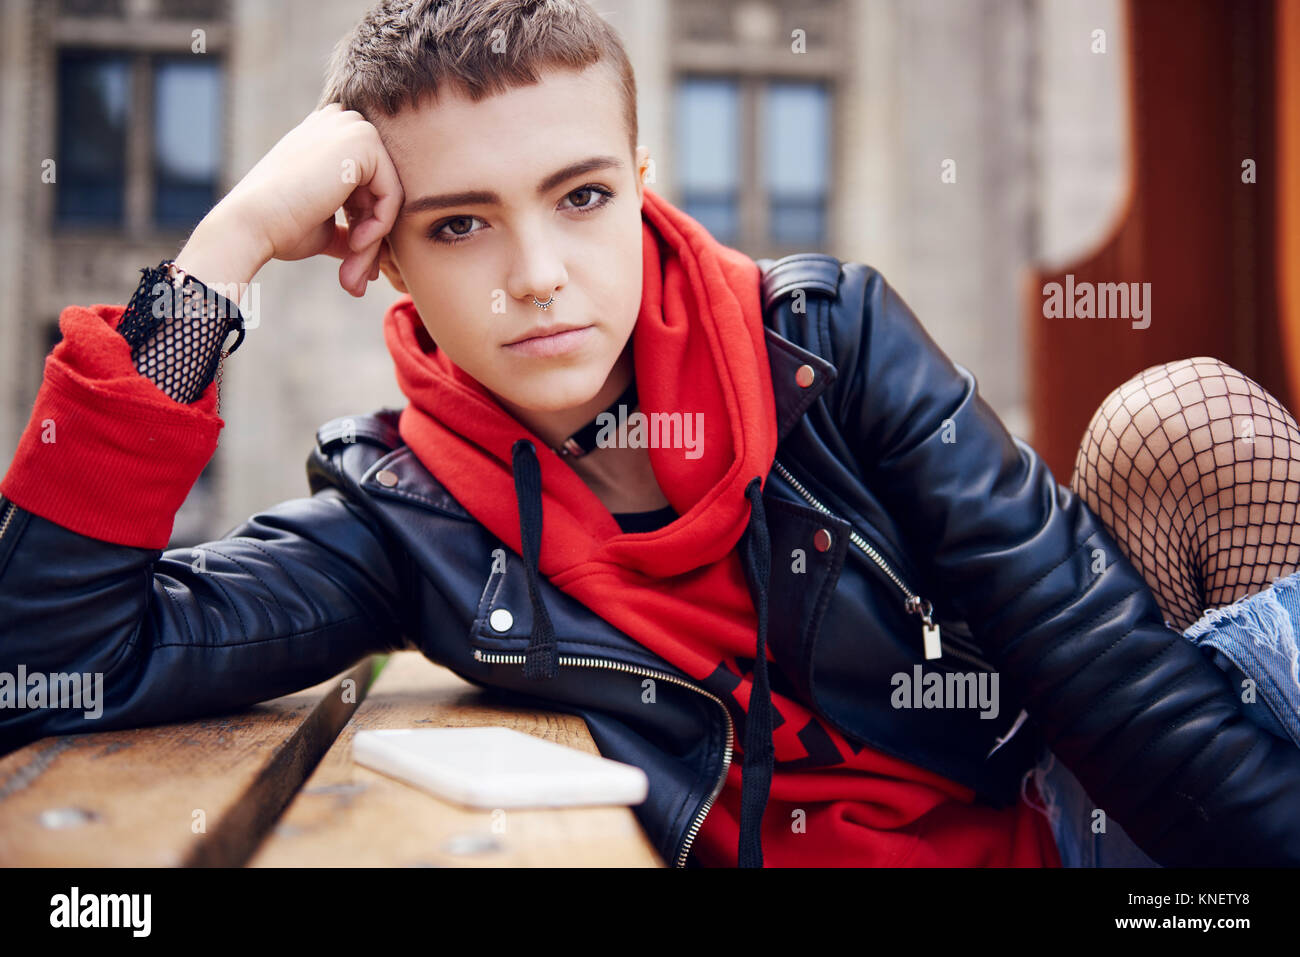 Portrait of cool young woman with short hair at city bench - Stock Image